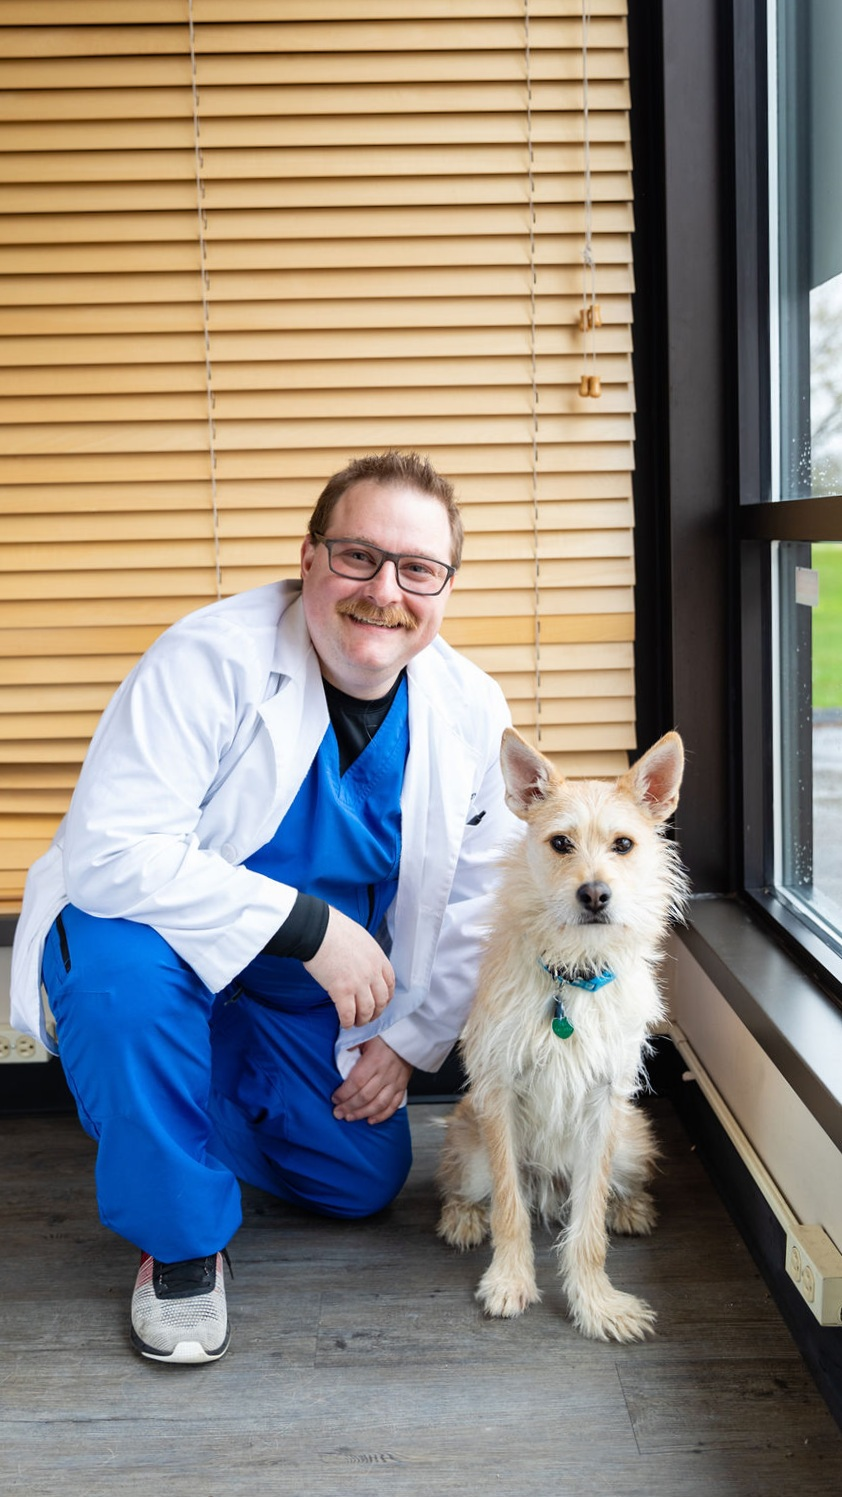 Dr. Scott F. Schwartz & Felix - Dr. Schwartz followed in his father's footsteps and graduated from the Southern California College of Optometry, Magna Cum Laude. He performed internships at the Southern Arizona Veterans Administration in Sierra Vista Arizona, Cedars-Sinai Medical Group in Beverly Hills California, and with the Indian Health Service at Hu Hu Kam Memorial Hospital in Sacatan Arizona.These internships concentrated in the diagnosis and treatment of ocular disease, including diabetic retinopathy, macular degeneration, and glaucoma. He also worked heavily in contact lens fitting, including specialty fits for orthokeratology, kerataconus and pelucid marginal degeneration.Felix is the friendliest member of our team and is great with patients of all ages. He loves belly rubs and all the attention he gets at workSchedule Now with Dr. Scott